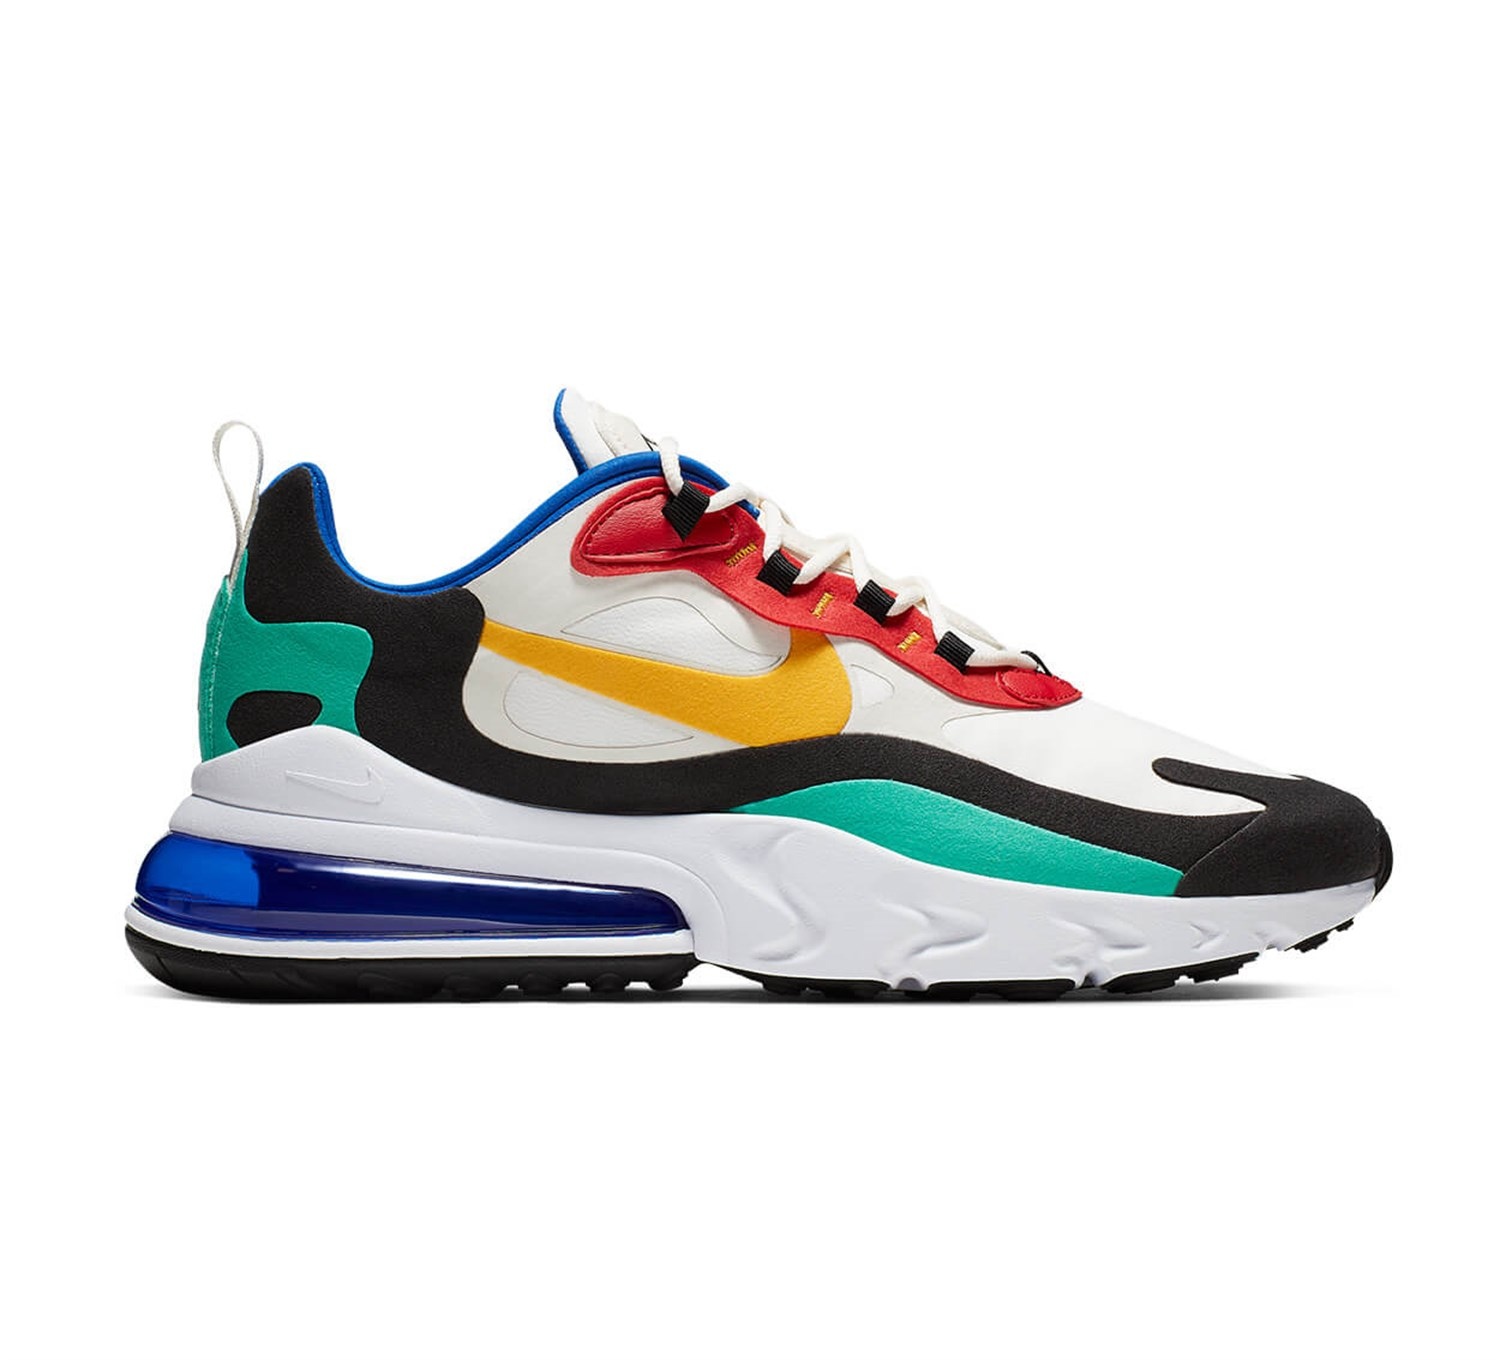 air max 270 react colorblocked kadın sneaker